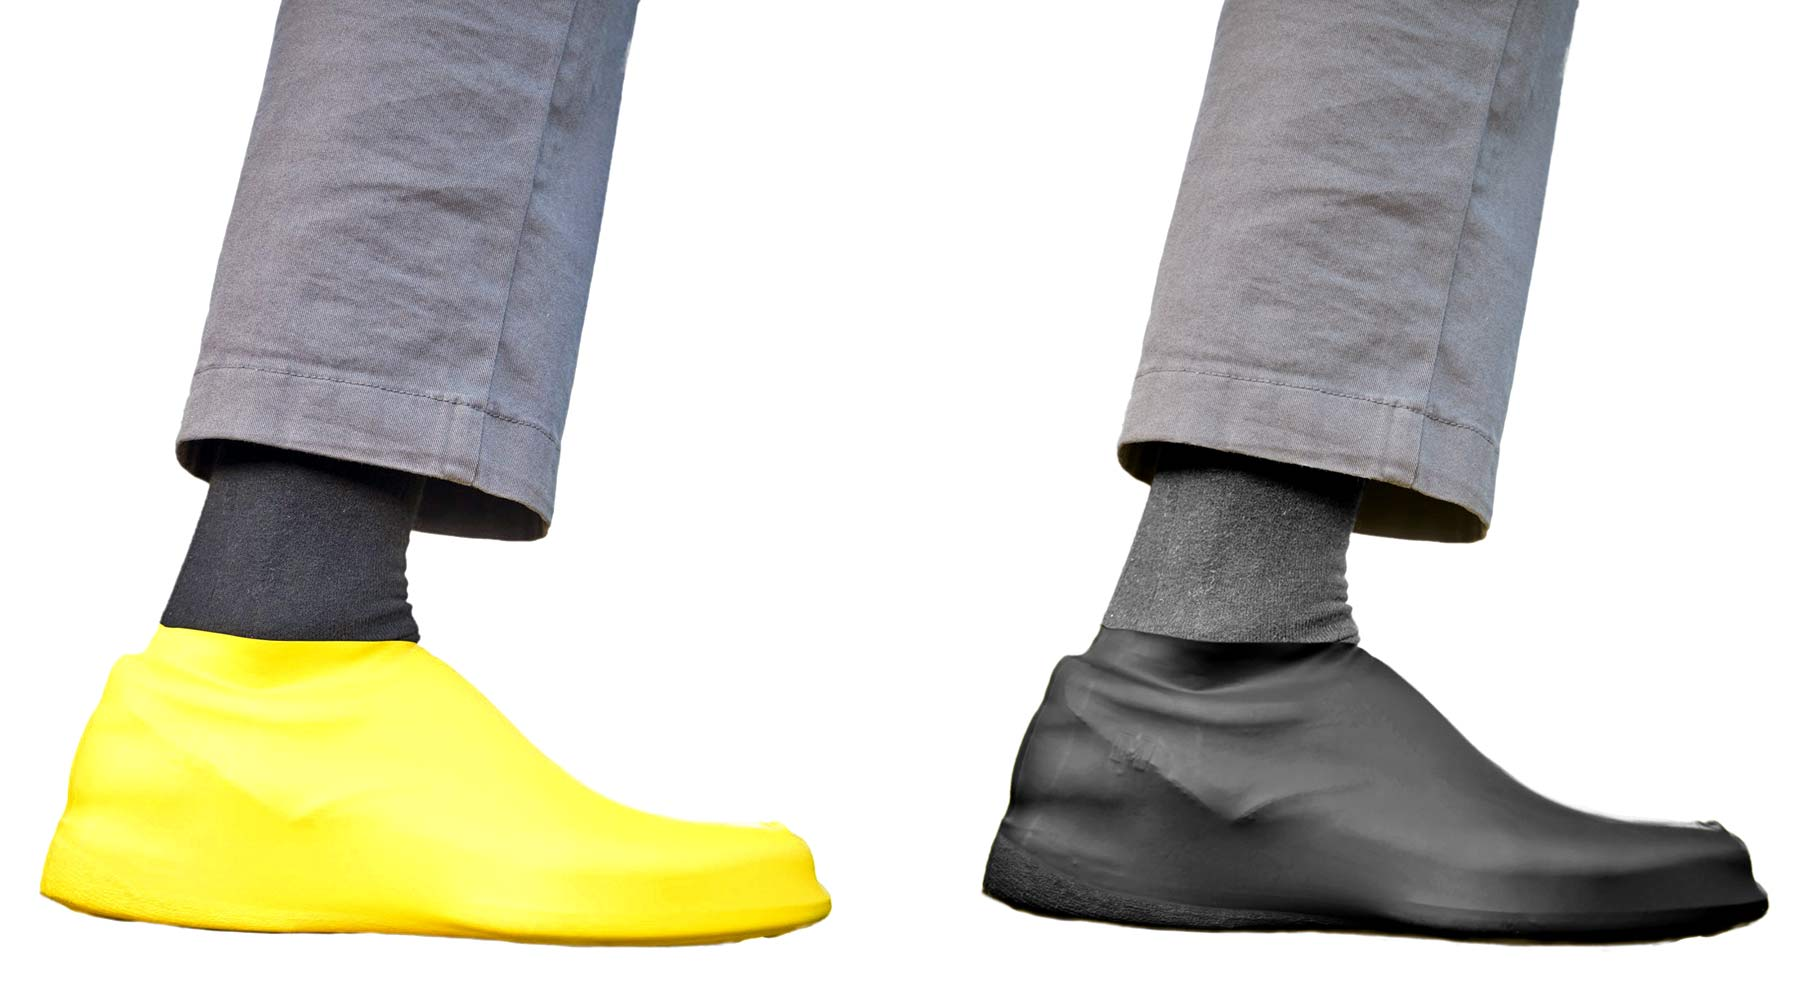 VeloToze Roam bike commuter shoe covers, waterproof latex flat pedal platform shoe covers for everyday protection, yellow or black color options